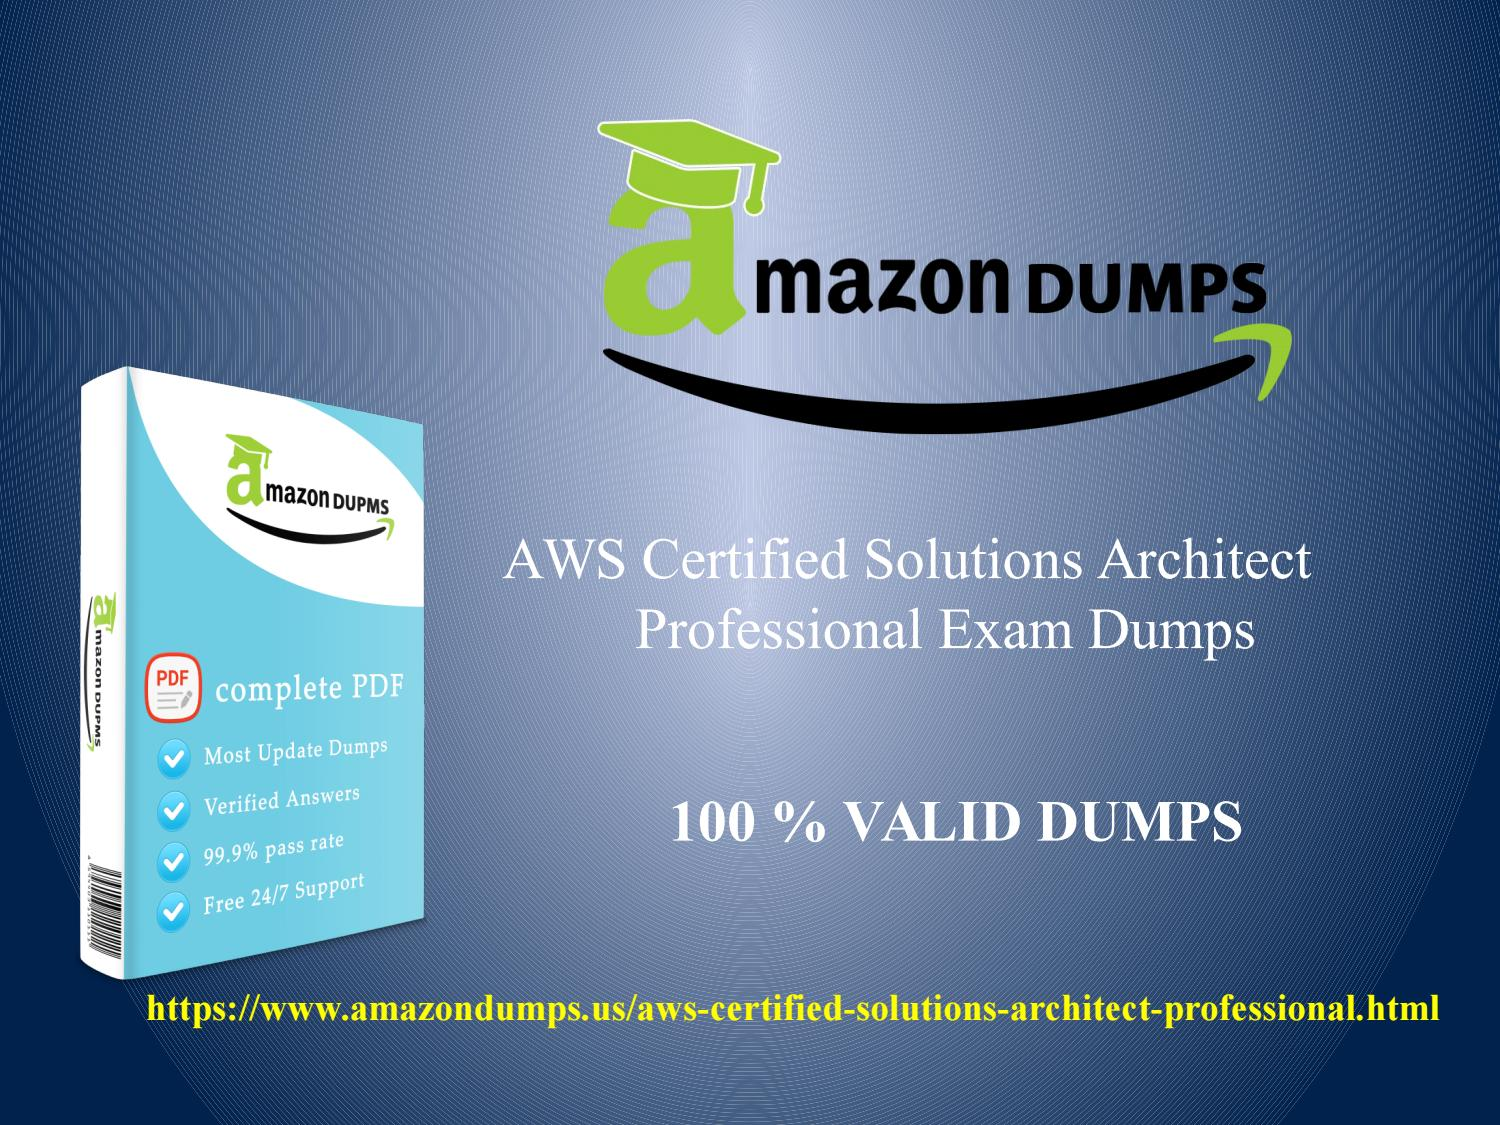 Buy aws certified solutions architect professional exam dumps with buy aws certified solutions architect professional exam dumps with 100 passing guarantee by real exam dumps issuu 1betcityfo Images